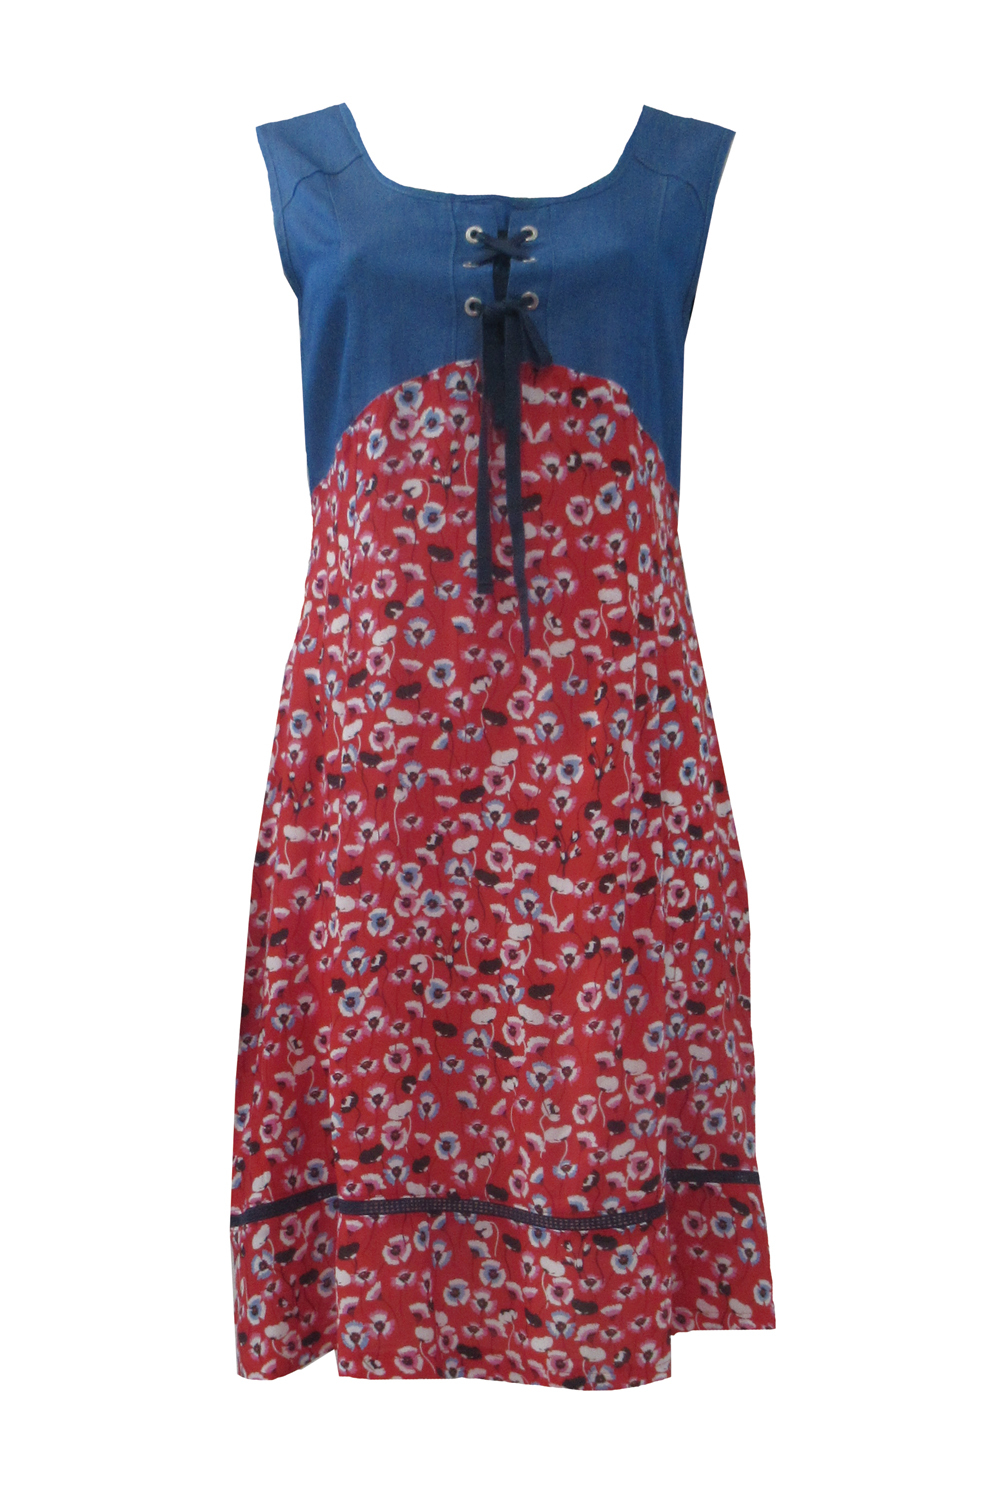 Maloka: Tied Bodice High Waisted Blooming Dress